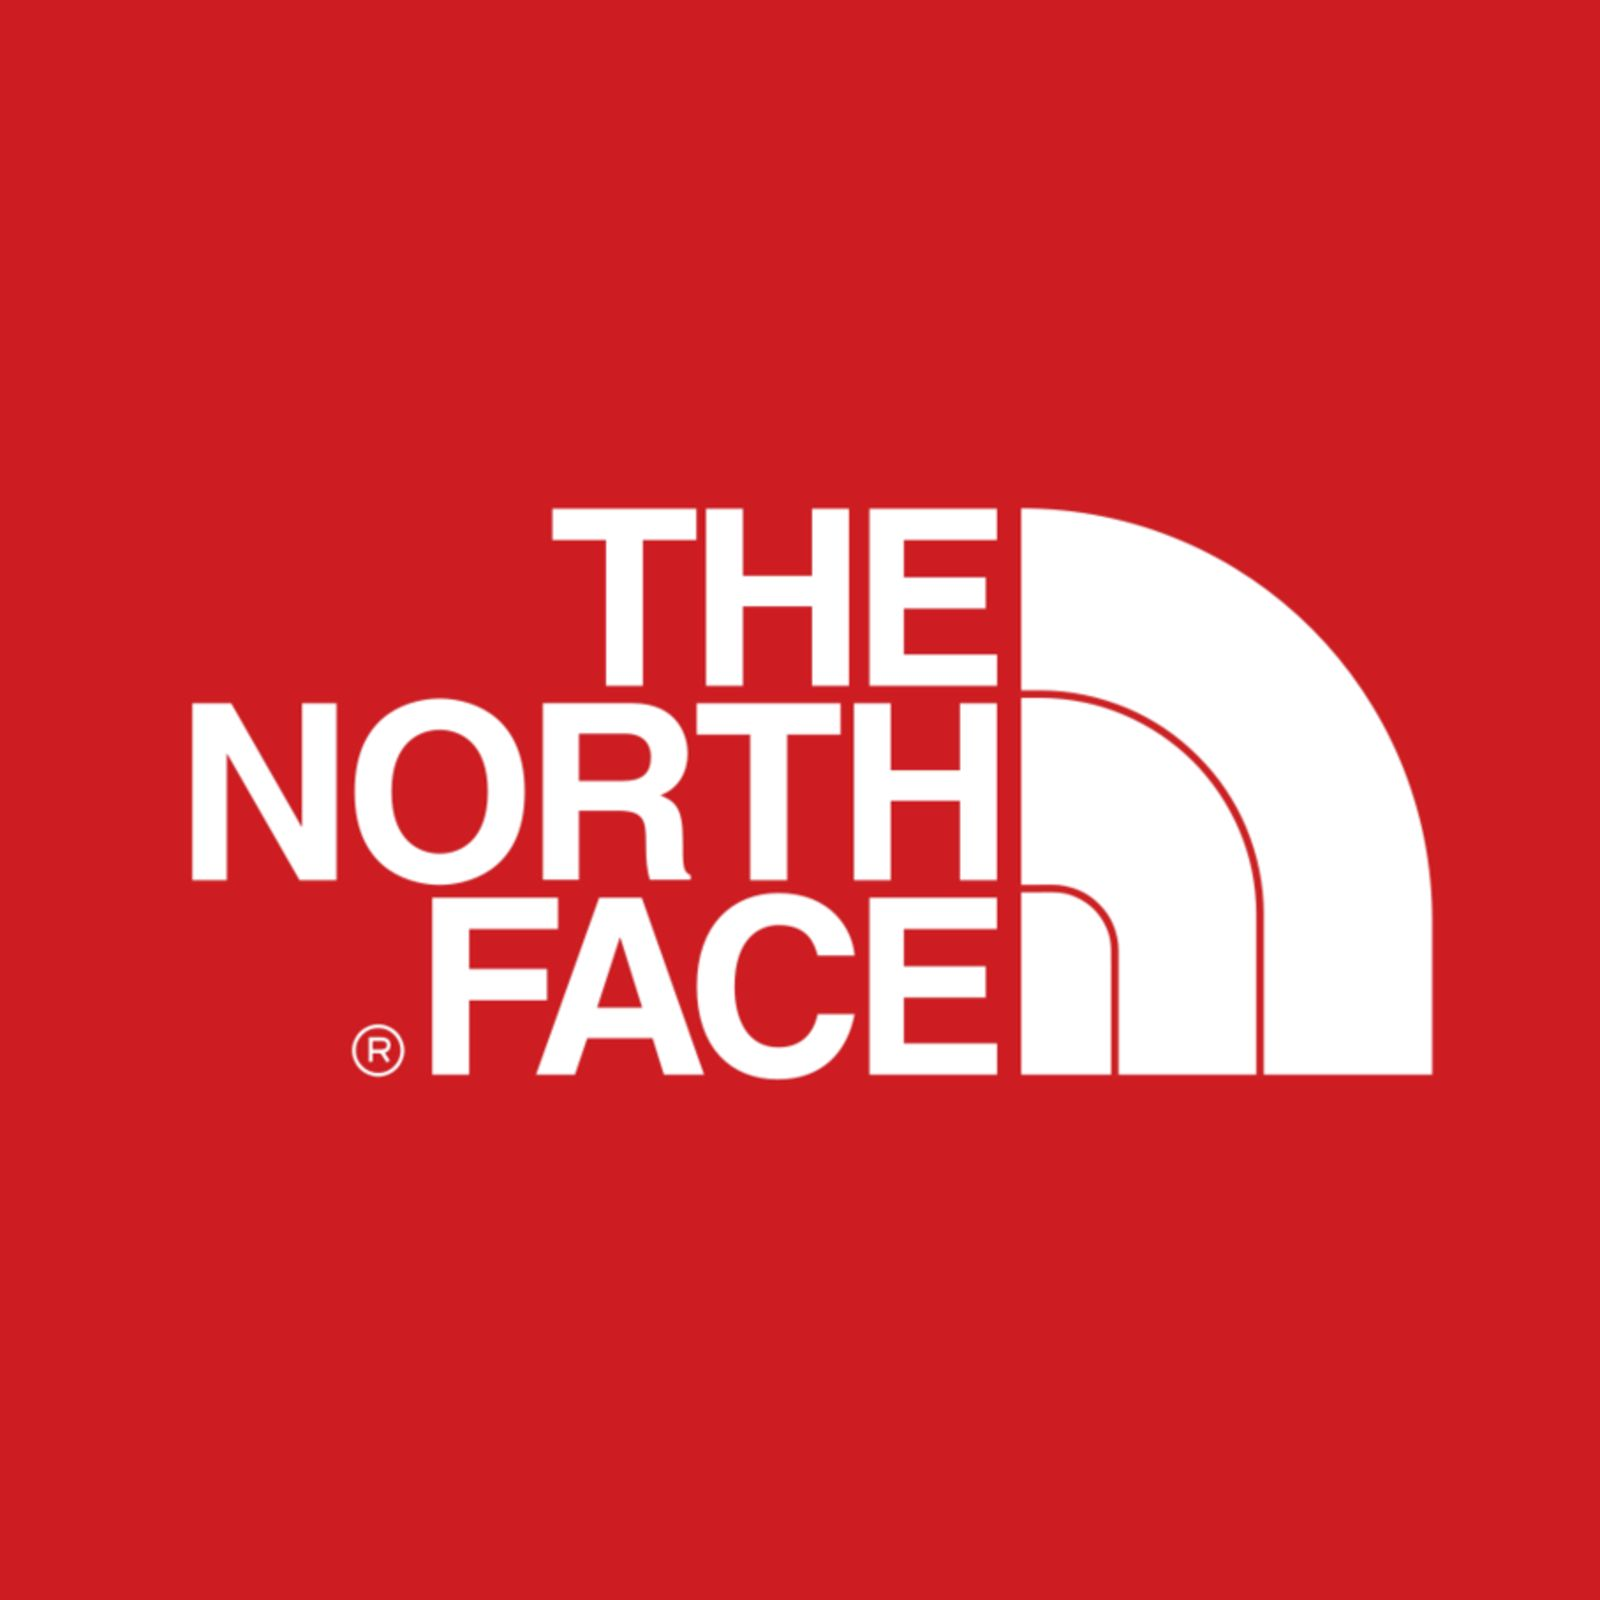 THE NORTH FACE (Imagen 1)